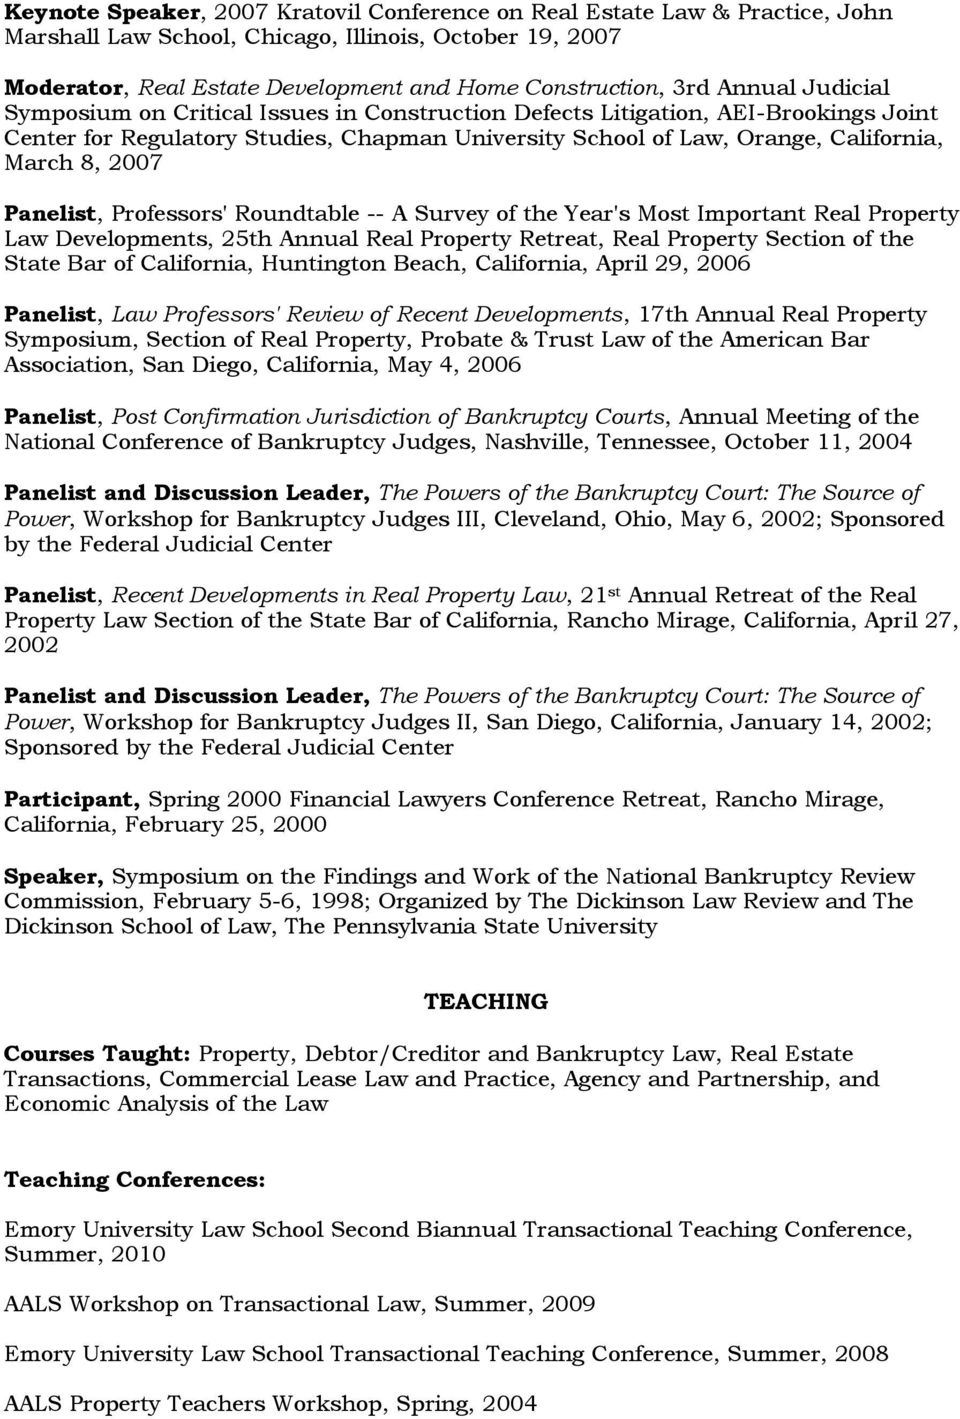 Panelist, Professors' Roundtable -- A Survey of the Year's Most Important Real Property Law Developments, 25th Annual Real Property Retreat, Real Property Section of the State Bar of California,